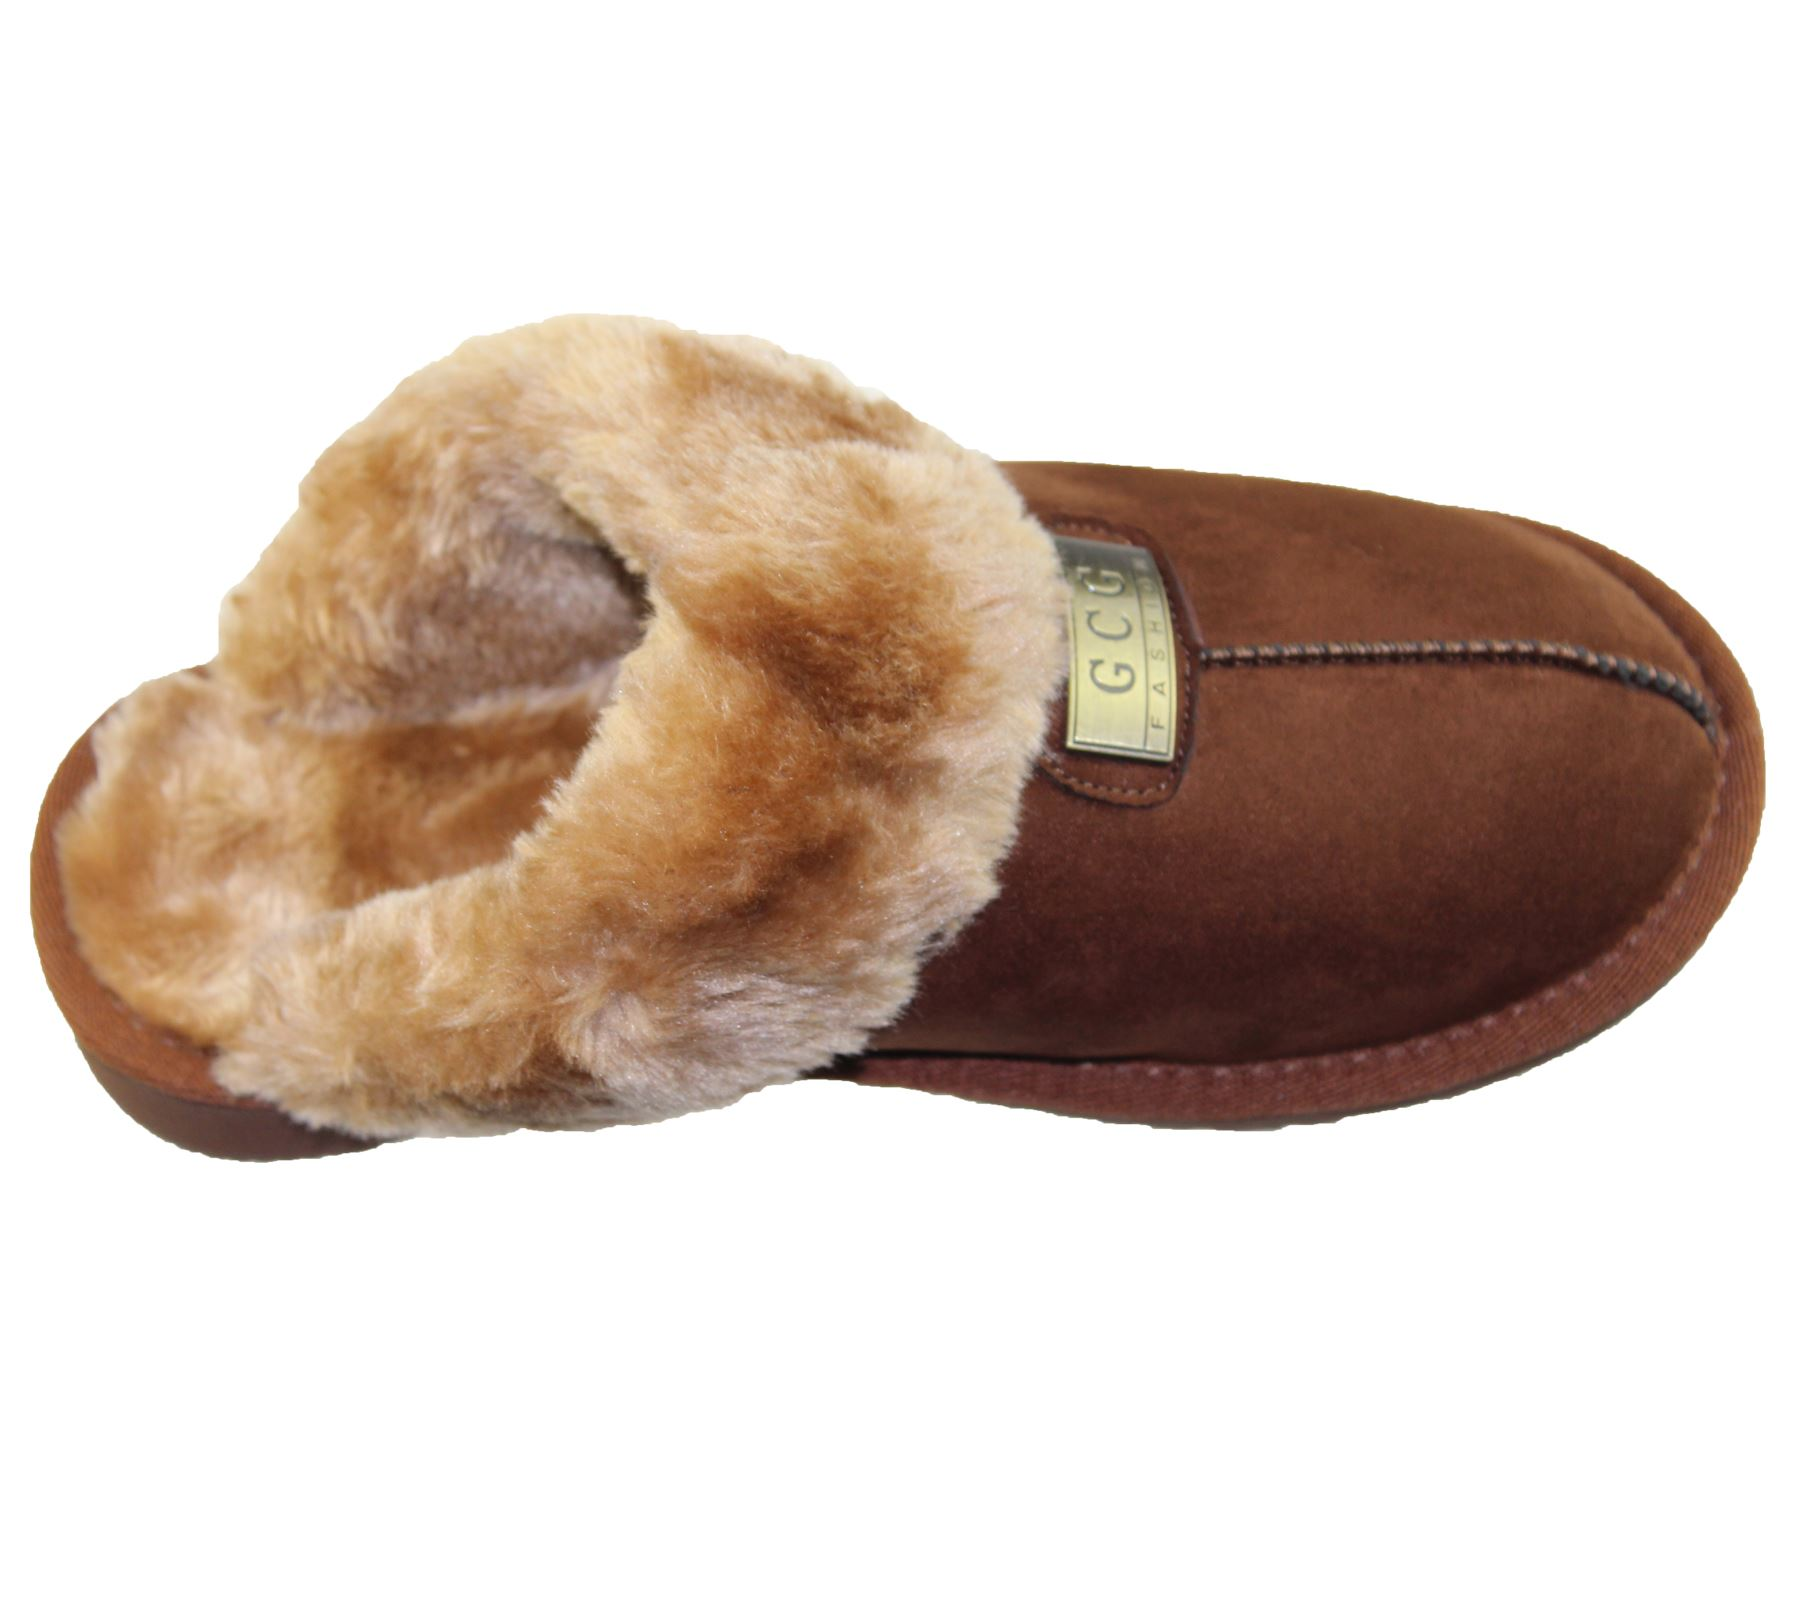 Womens-Fur-Lined-Slippers-Ladies-Mules-Non-Slip-Rubber-Sole-Shoes miniatura 12